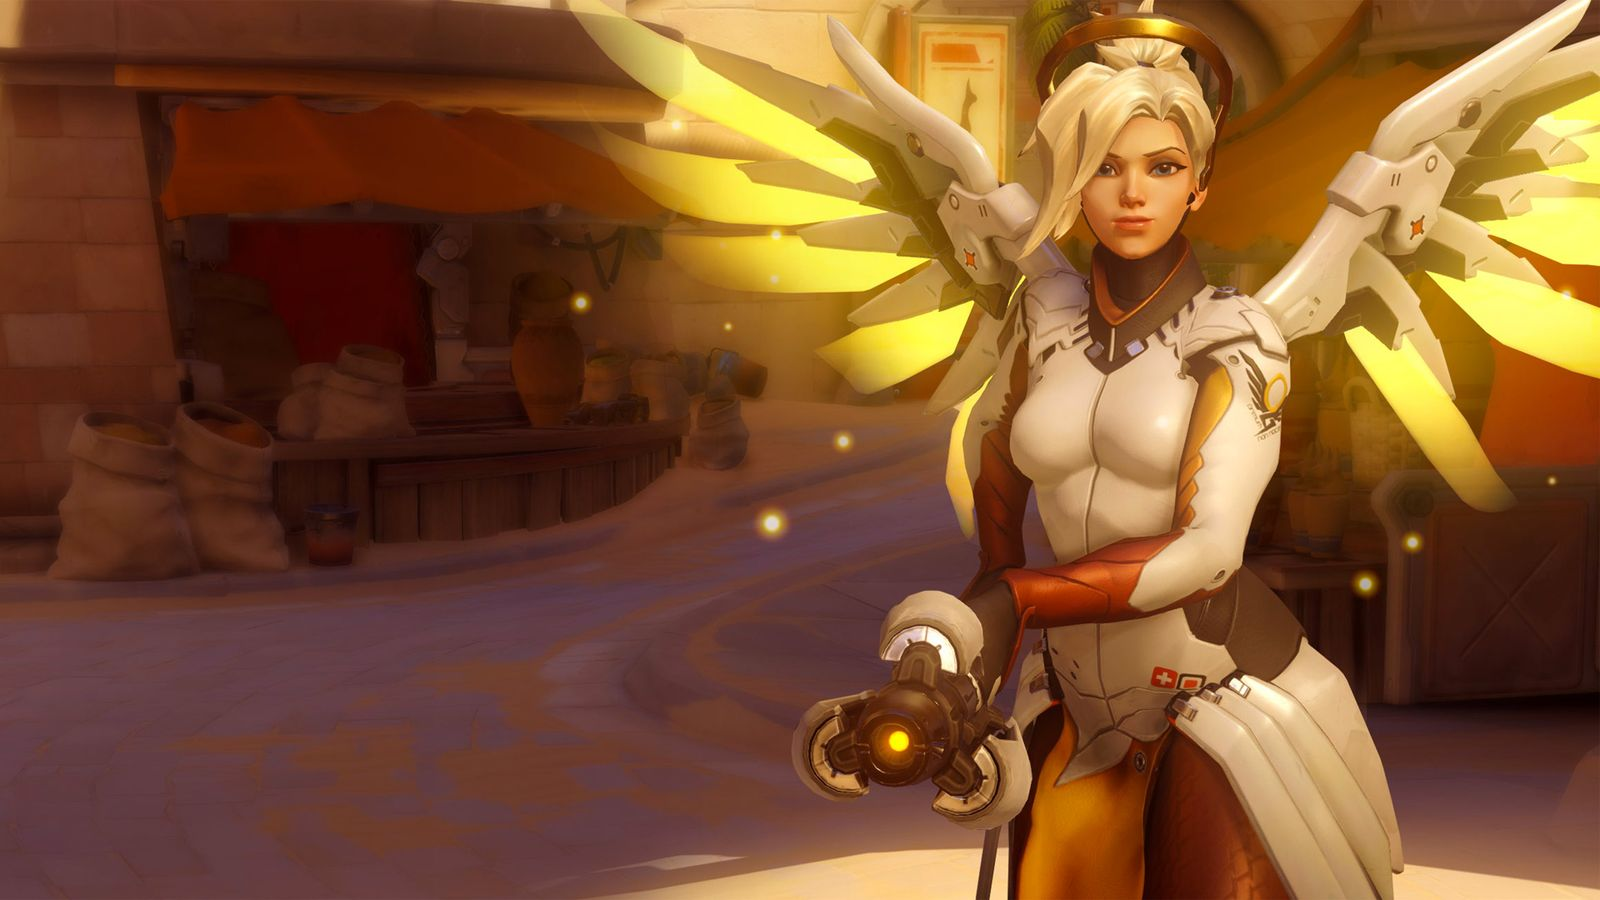 Overwatch porn searches up 817%, but don't blame us screenshot